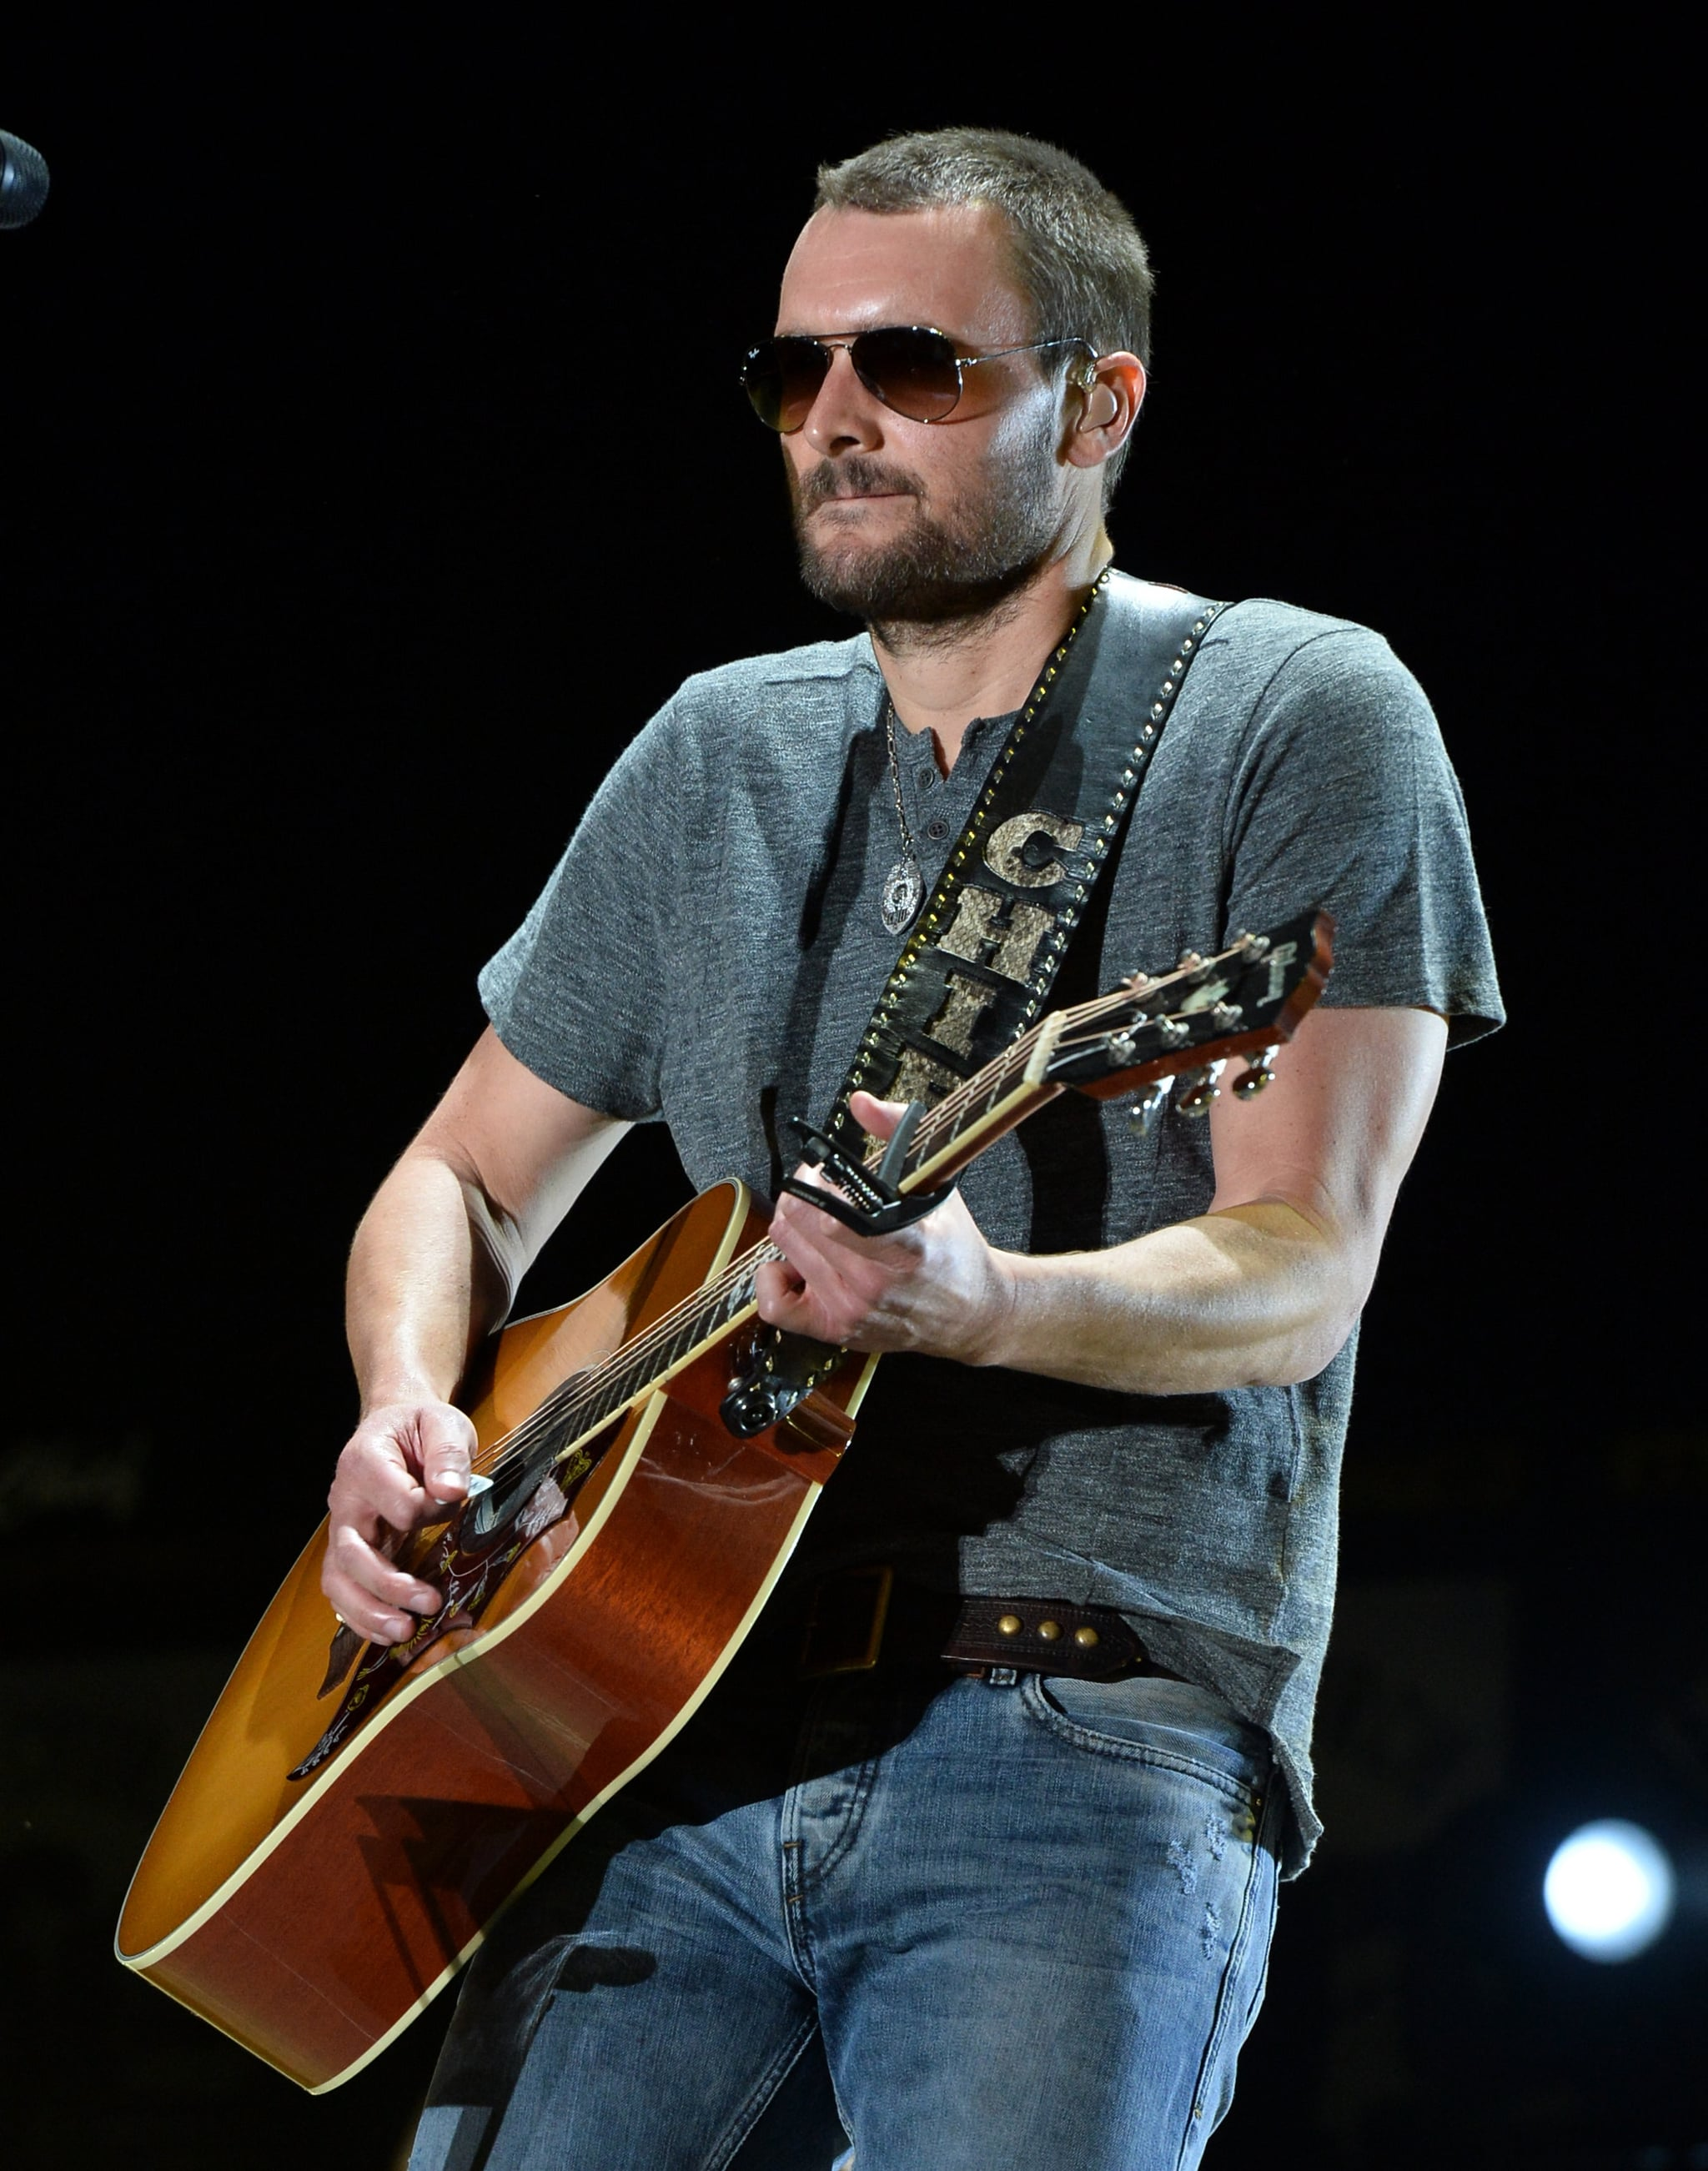 And when he gets all serious playing the guitar, he looks like this.